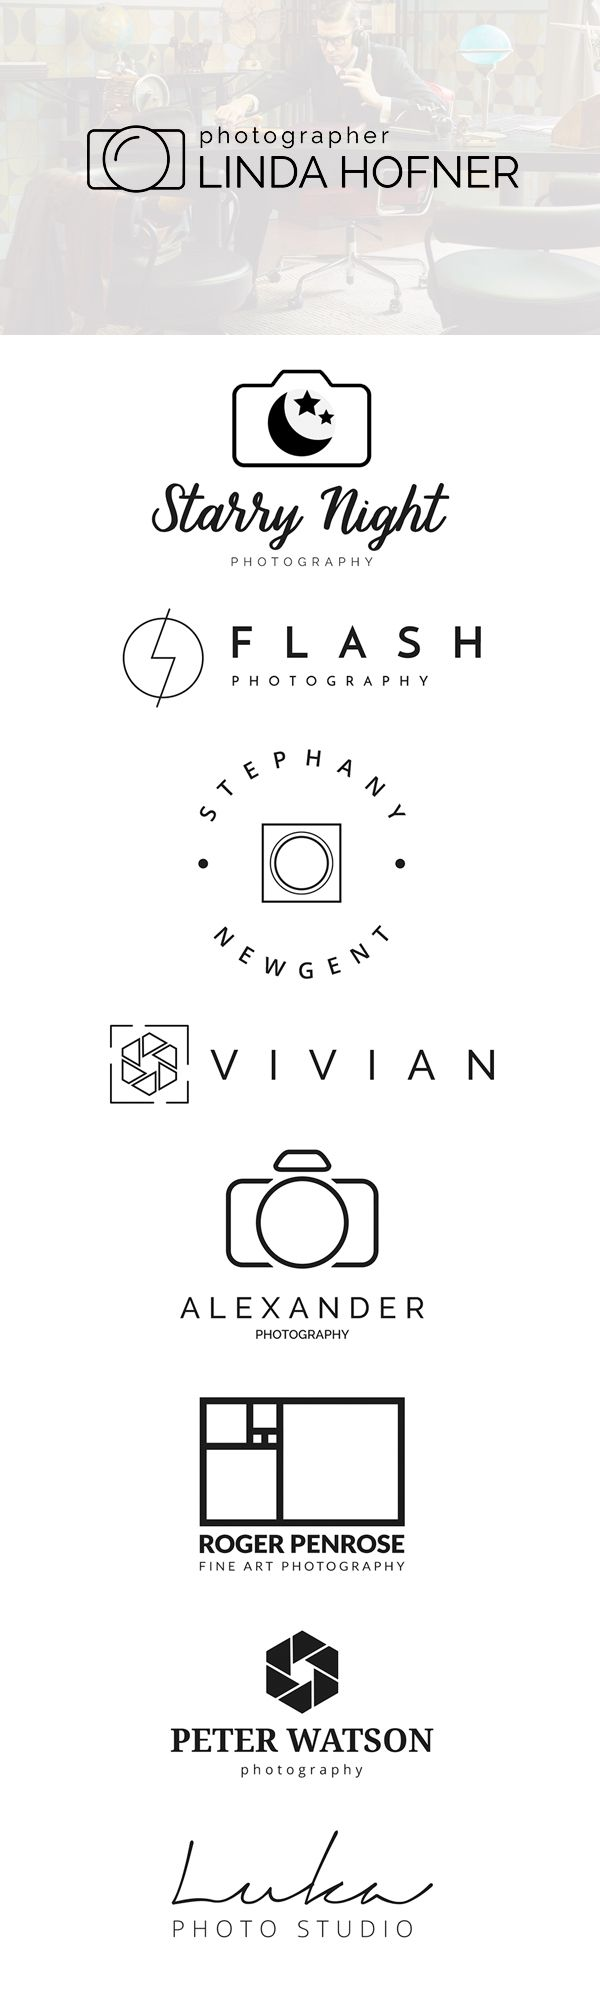 free photography logo templates psd design b logo pinterest